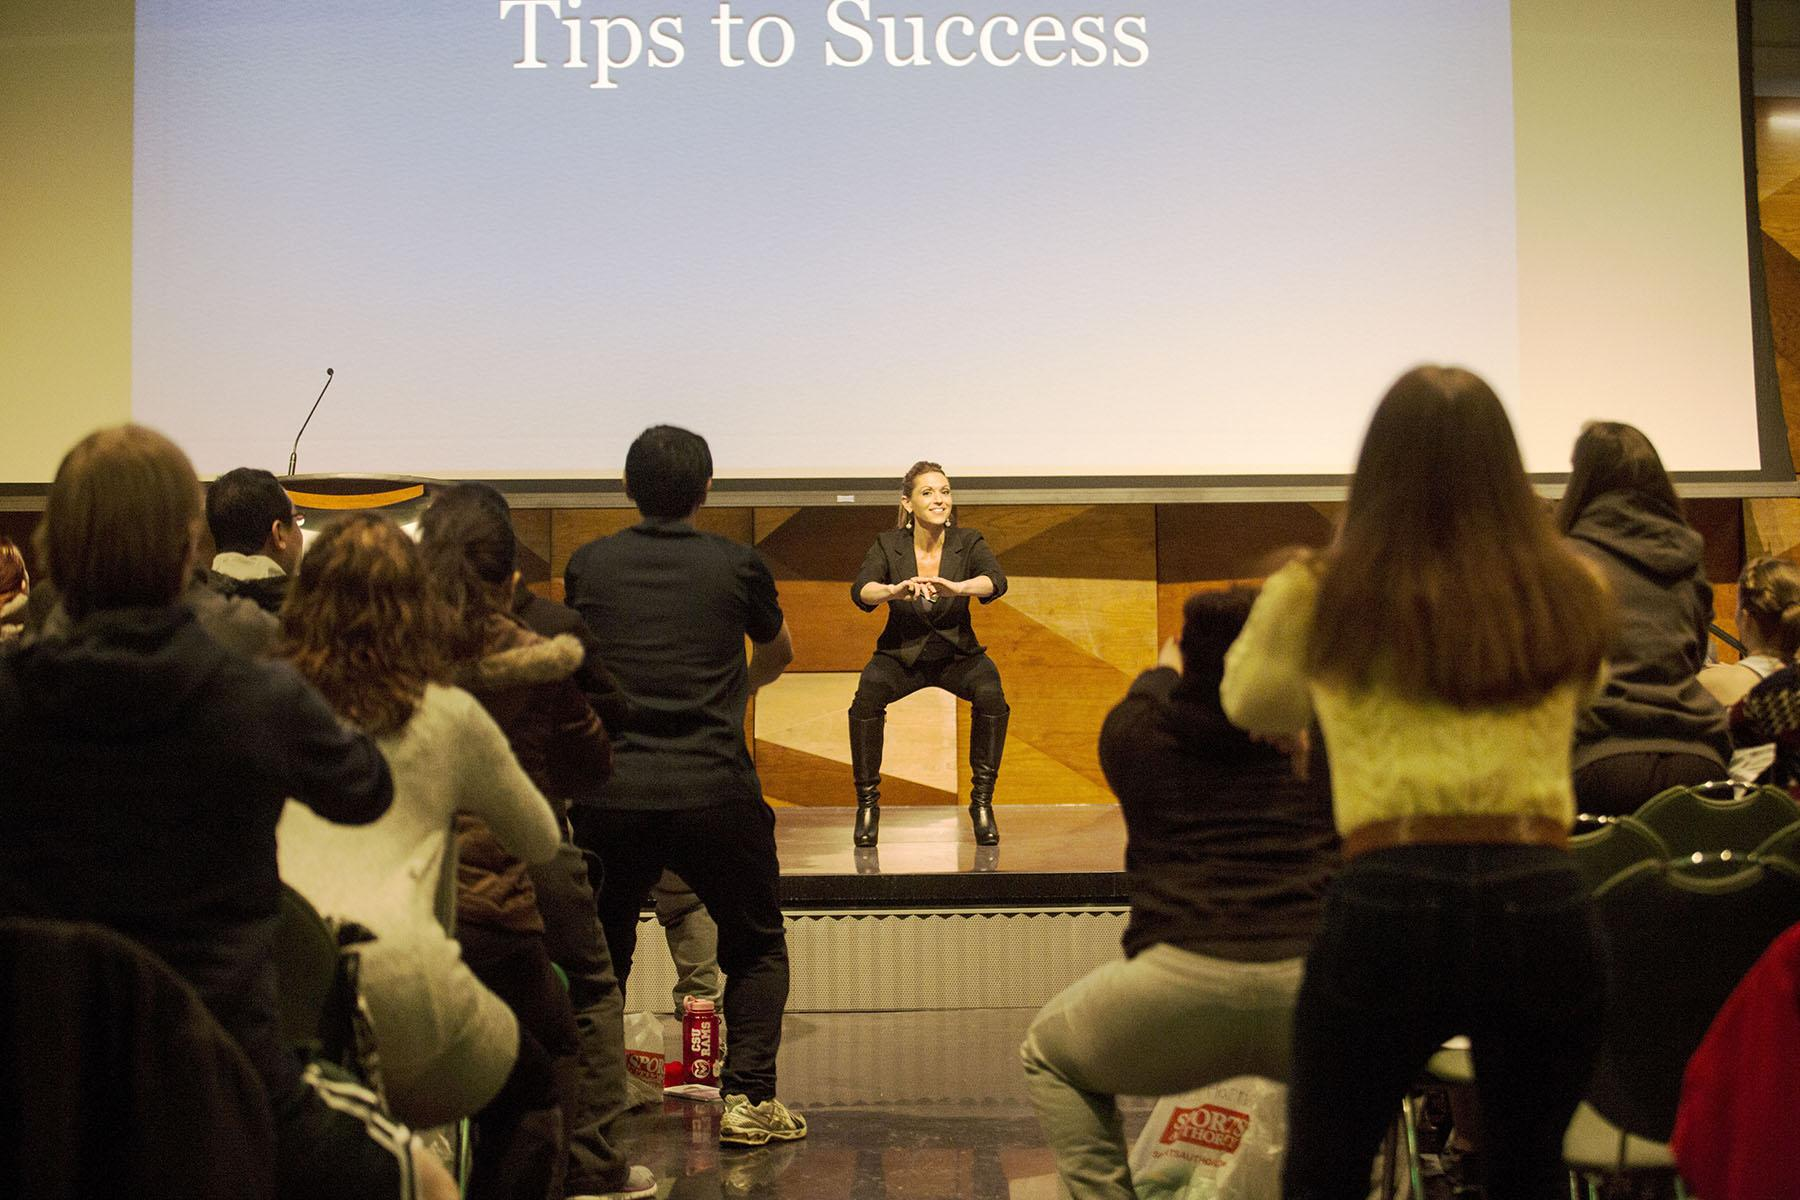 """Kim Lyons, a trainer off of the popular TV show """"The Biggest Loser,"""" kicks off a nine week program for CSU students to get in shape called Ram Recharge with an inspiring presentation."""